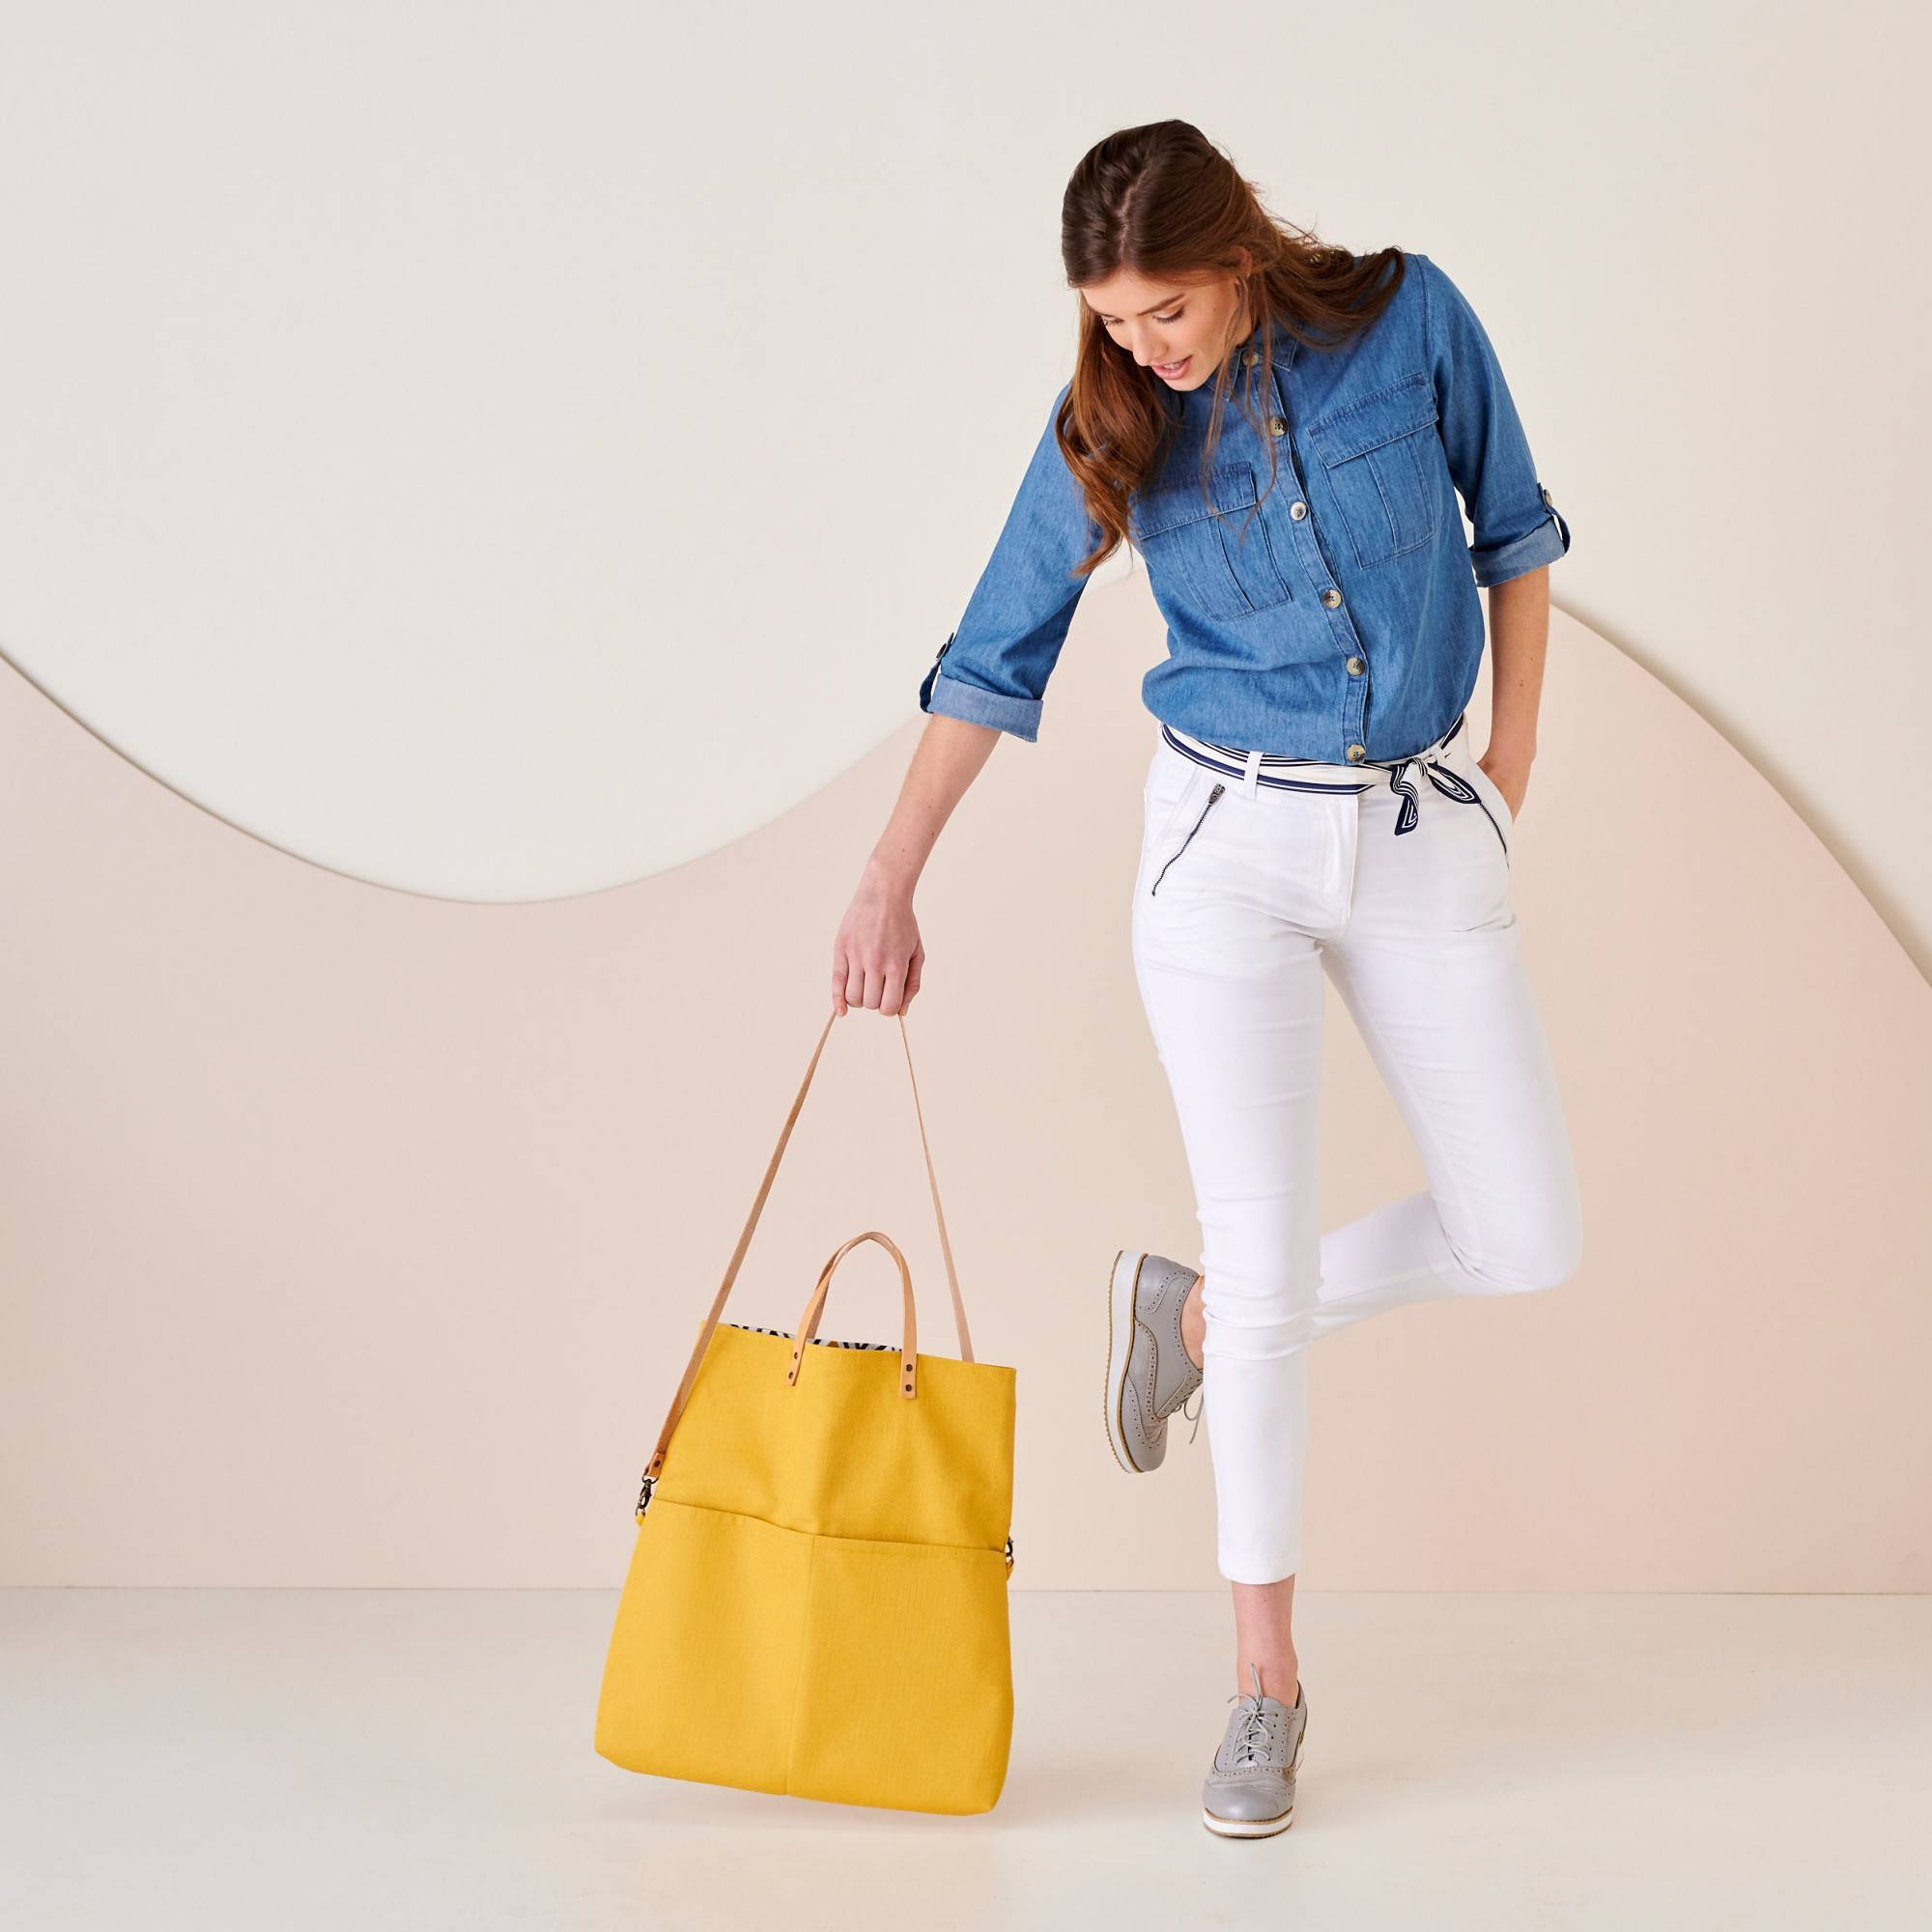 Sac shopping transformable en besace, fabrication éco-responsable - Jaune - Taille : TU - Blancheporte